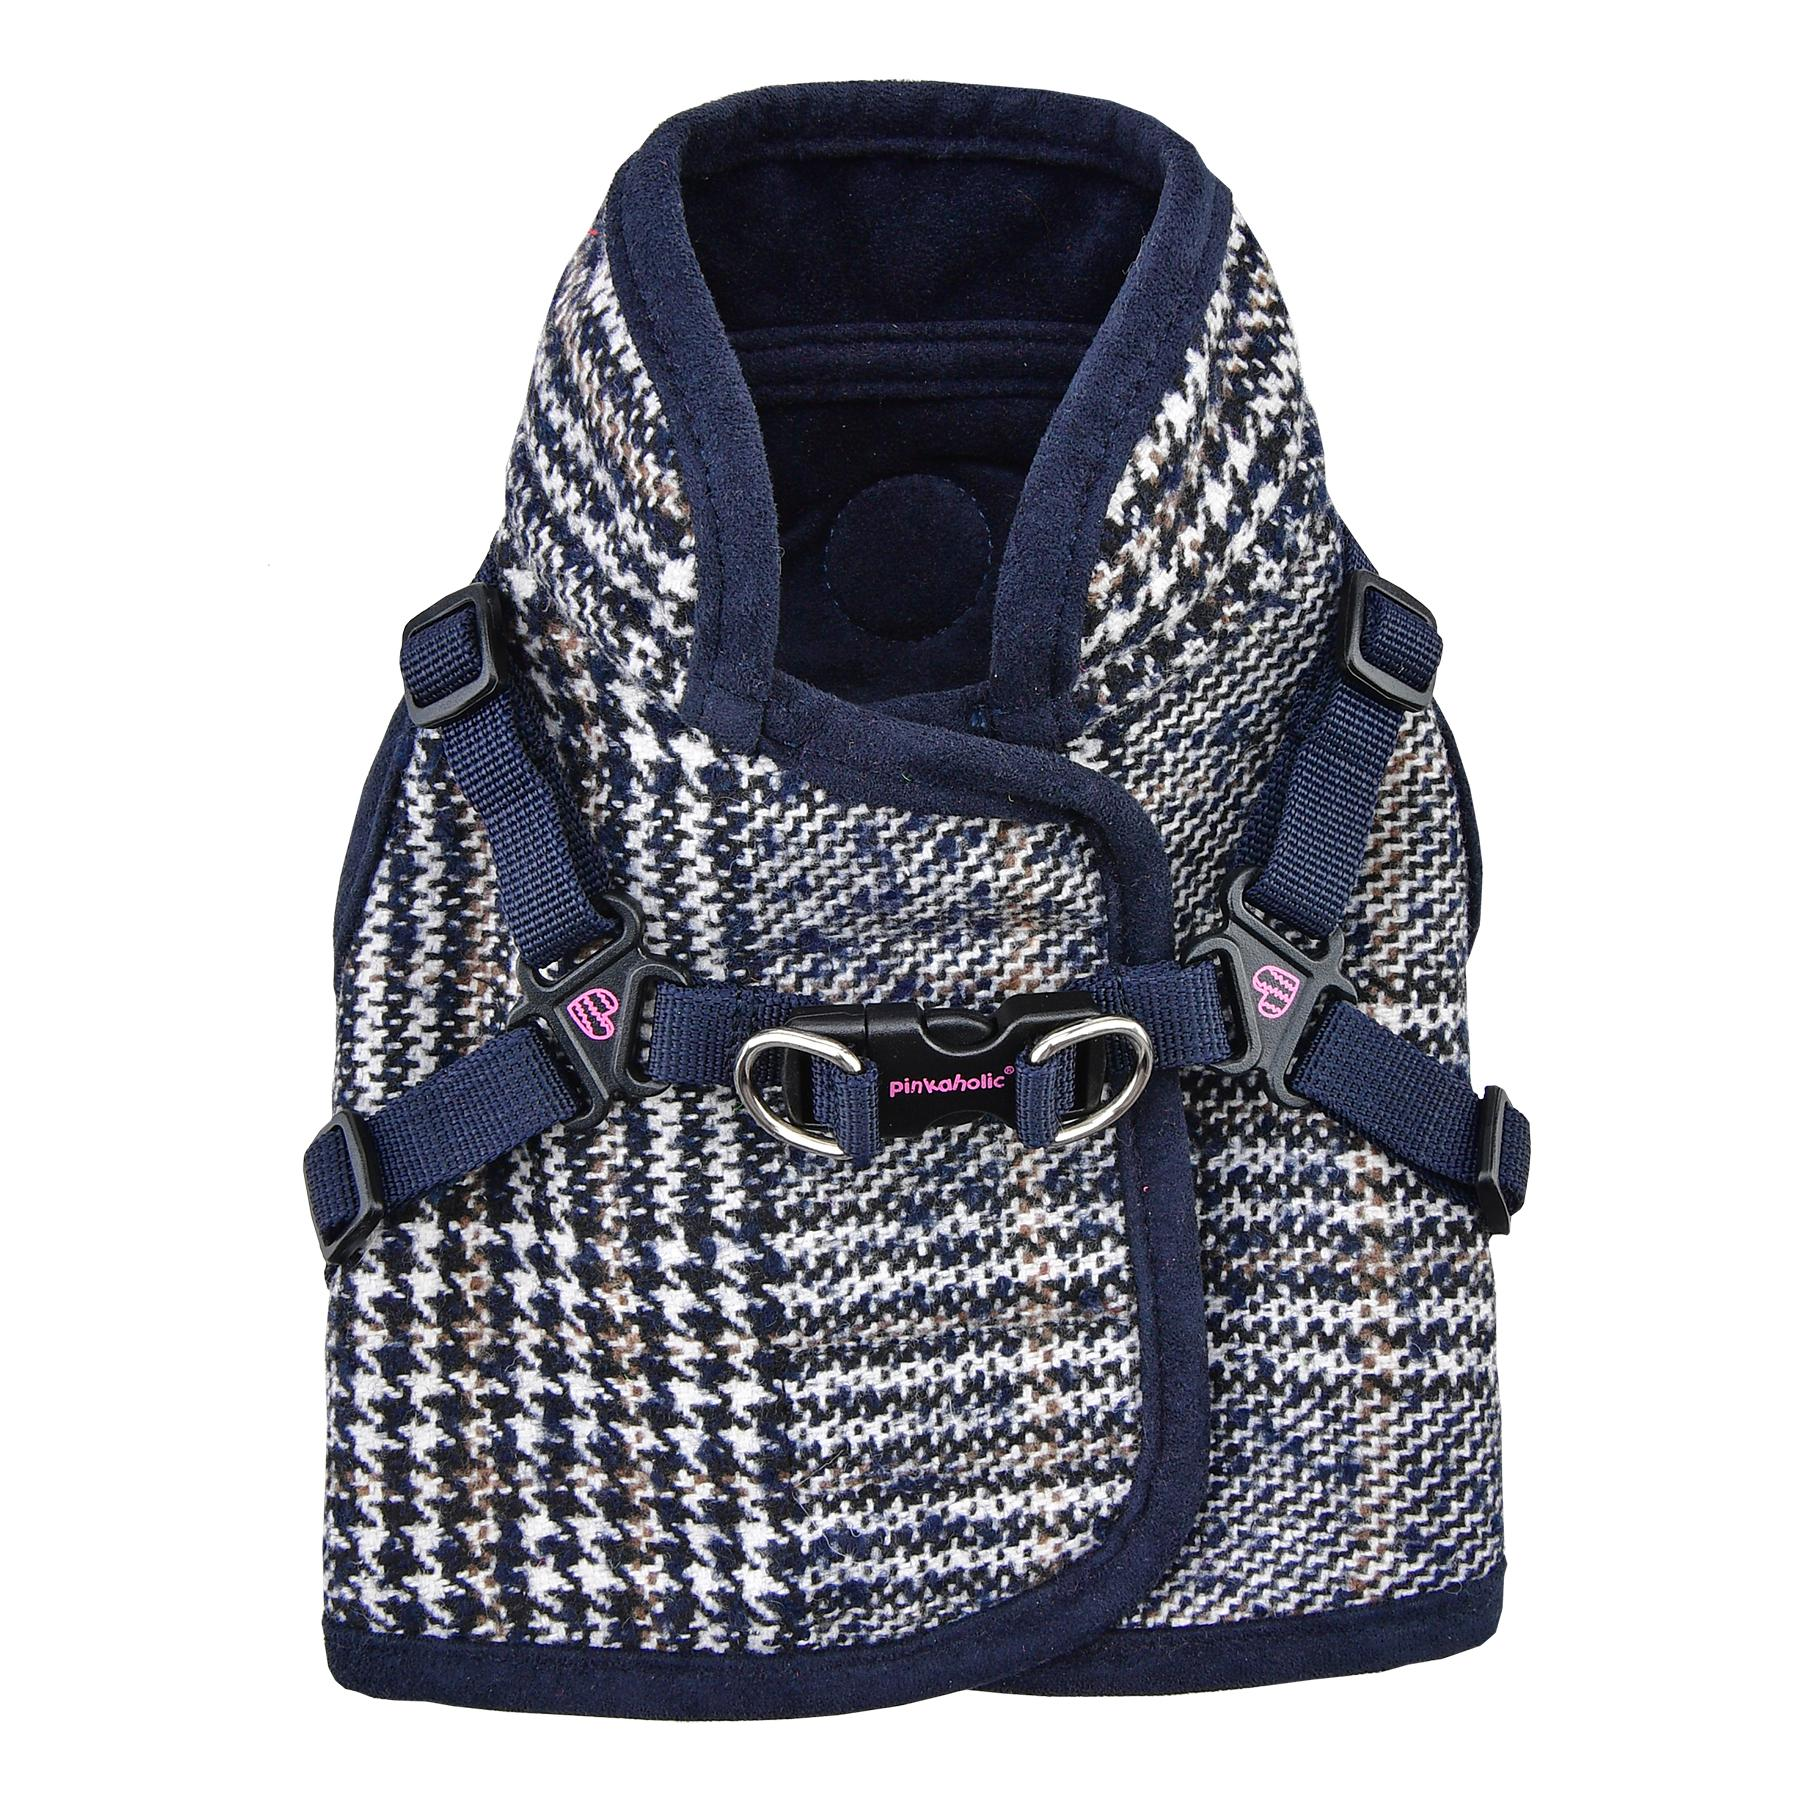 Da Vinci Vest Dog Harness By Pinkaholic - Navy